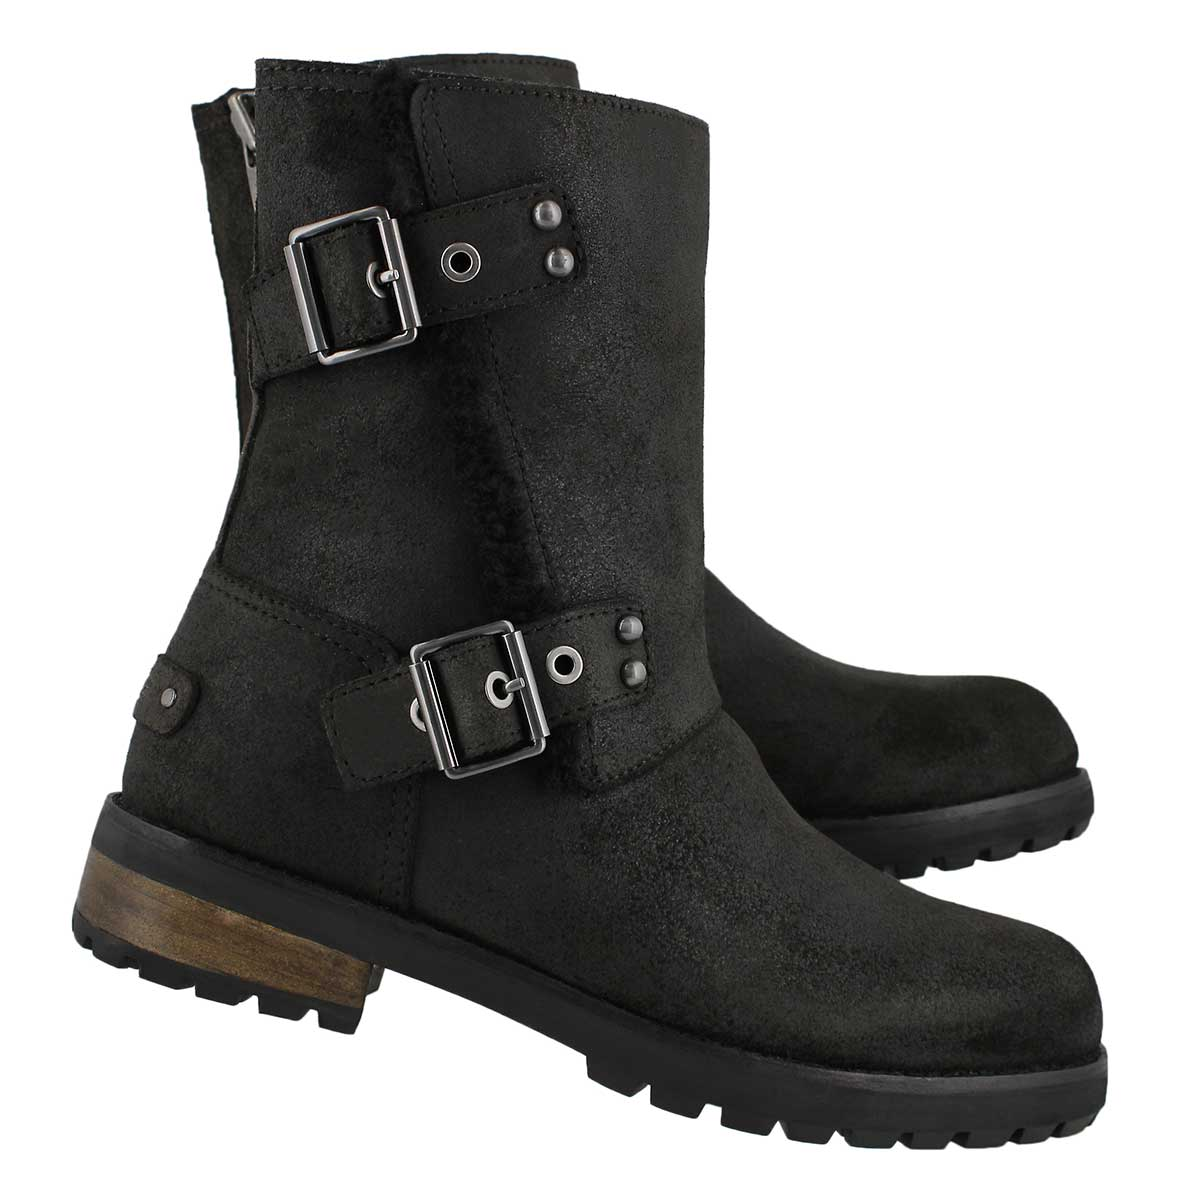 Lds Niels II black zip up ankle boot